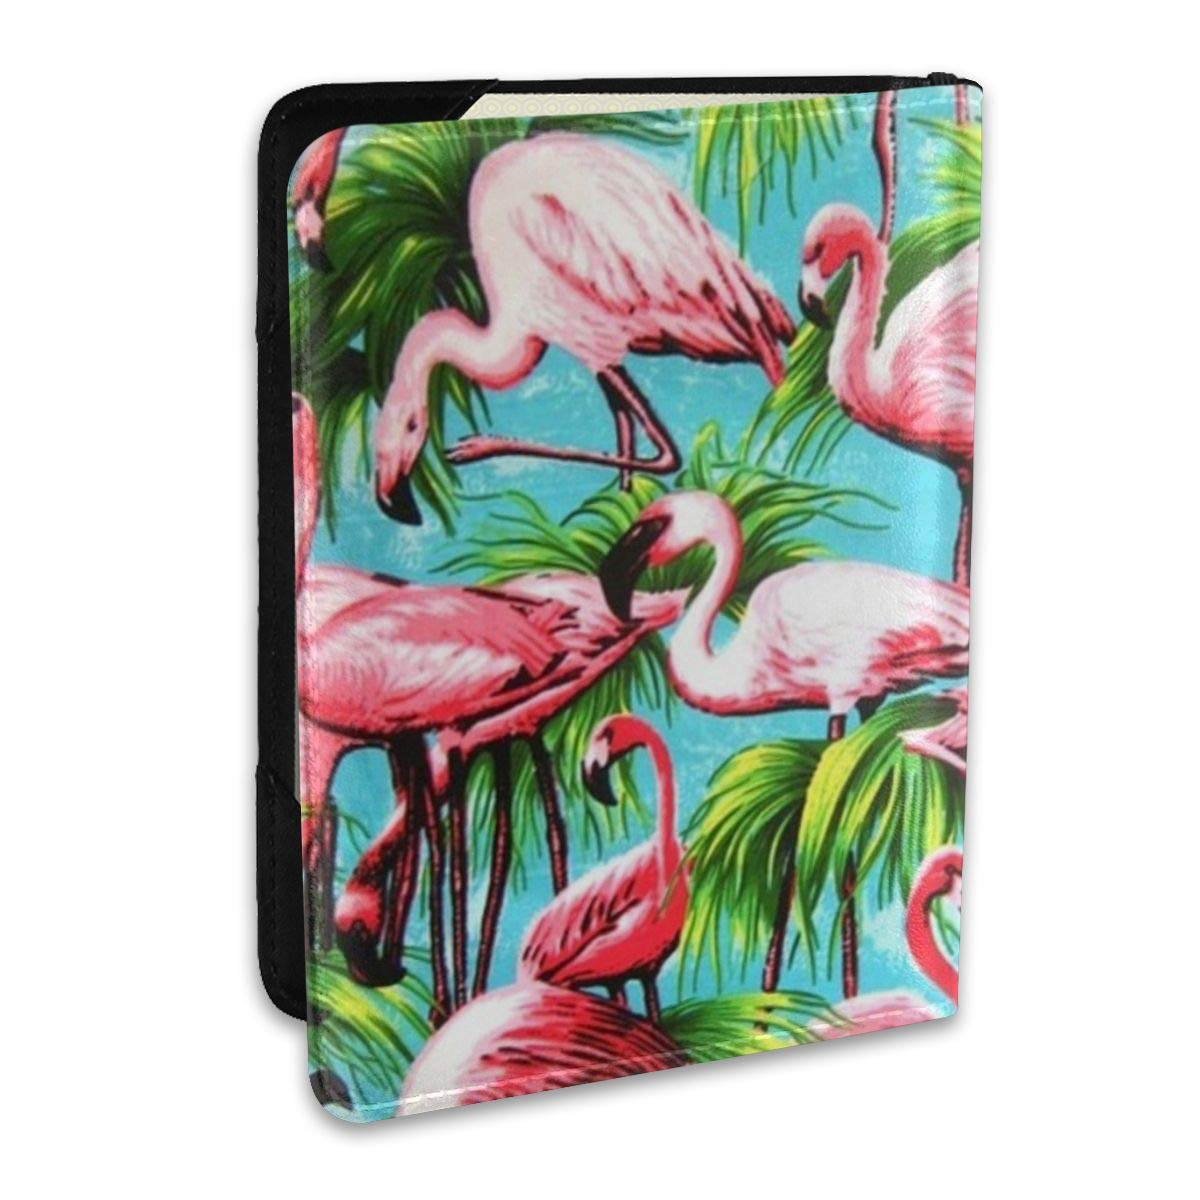 Flamingo Pattern Fashion Leather Passport Holder Cover Case Travel Wallet 6.5 In